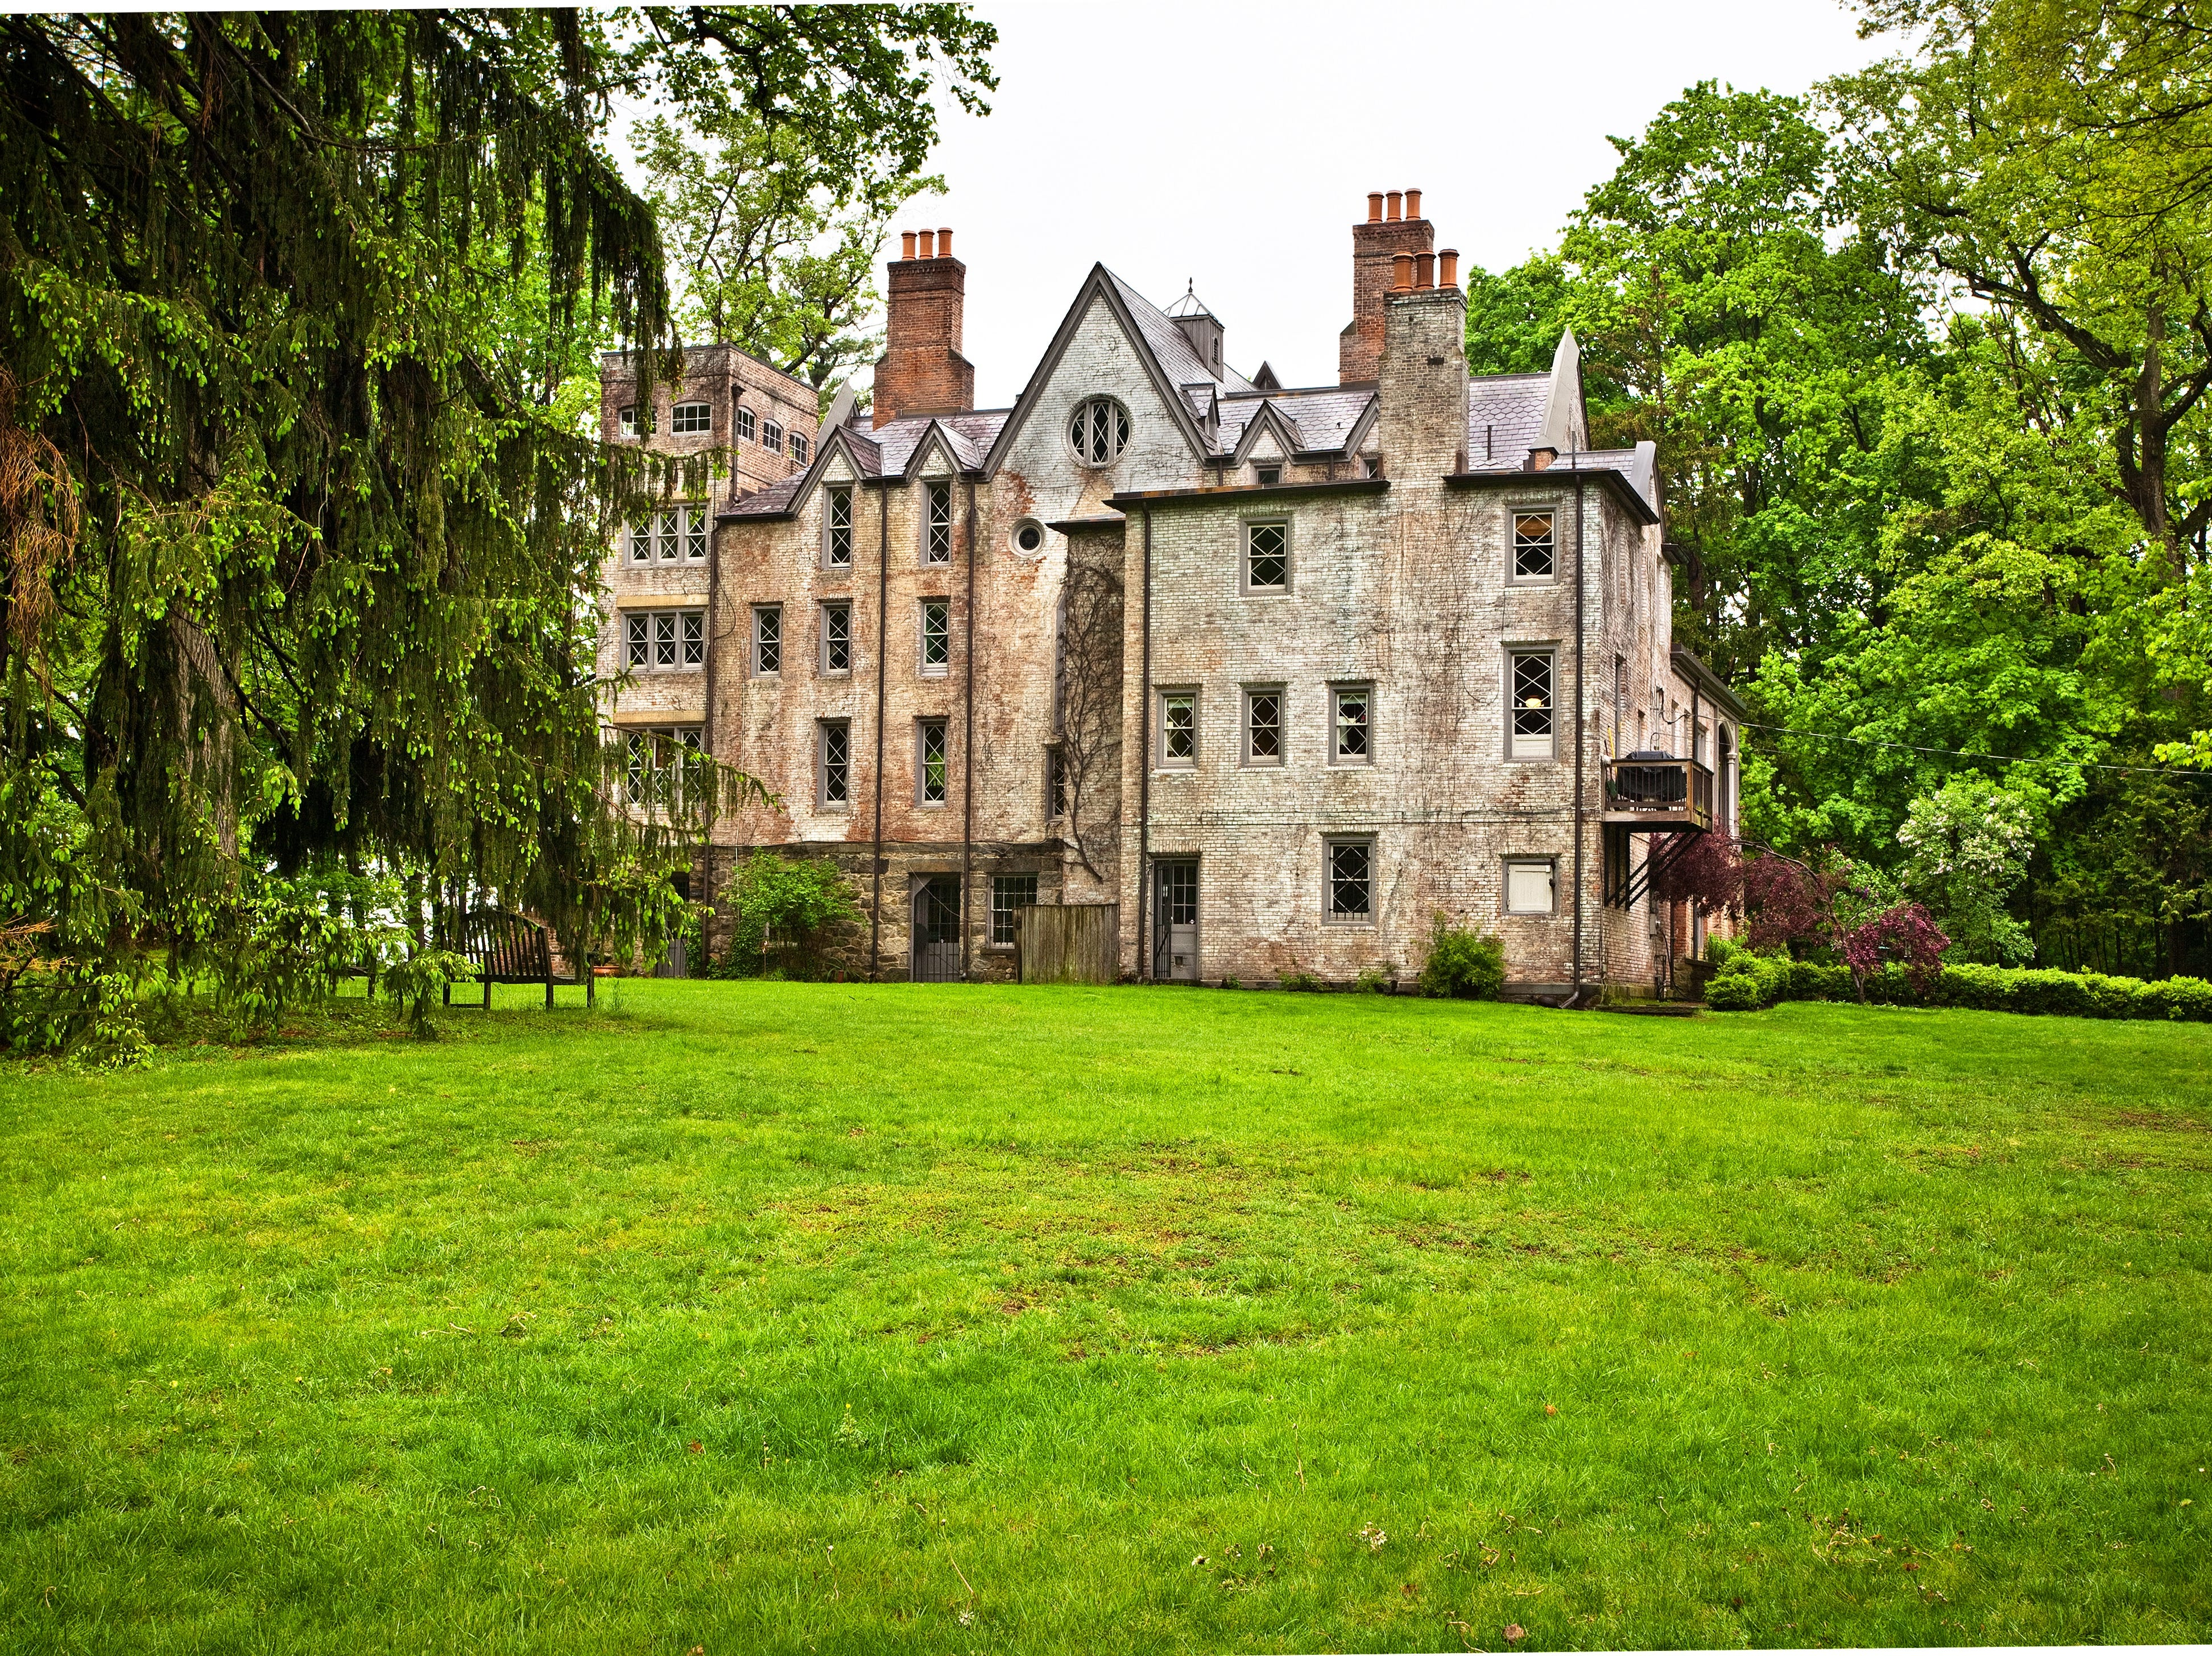 19th century Hudson River estate, built for a U.S. Attorney General, on the market for $5M